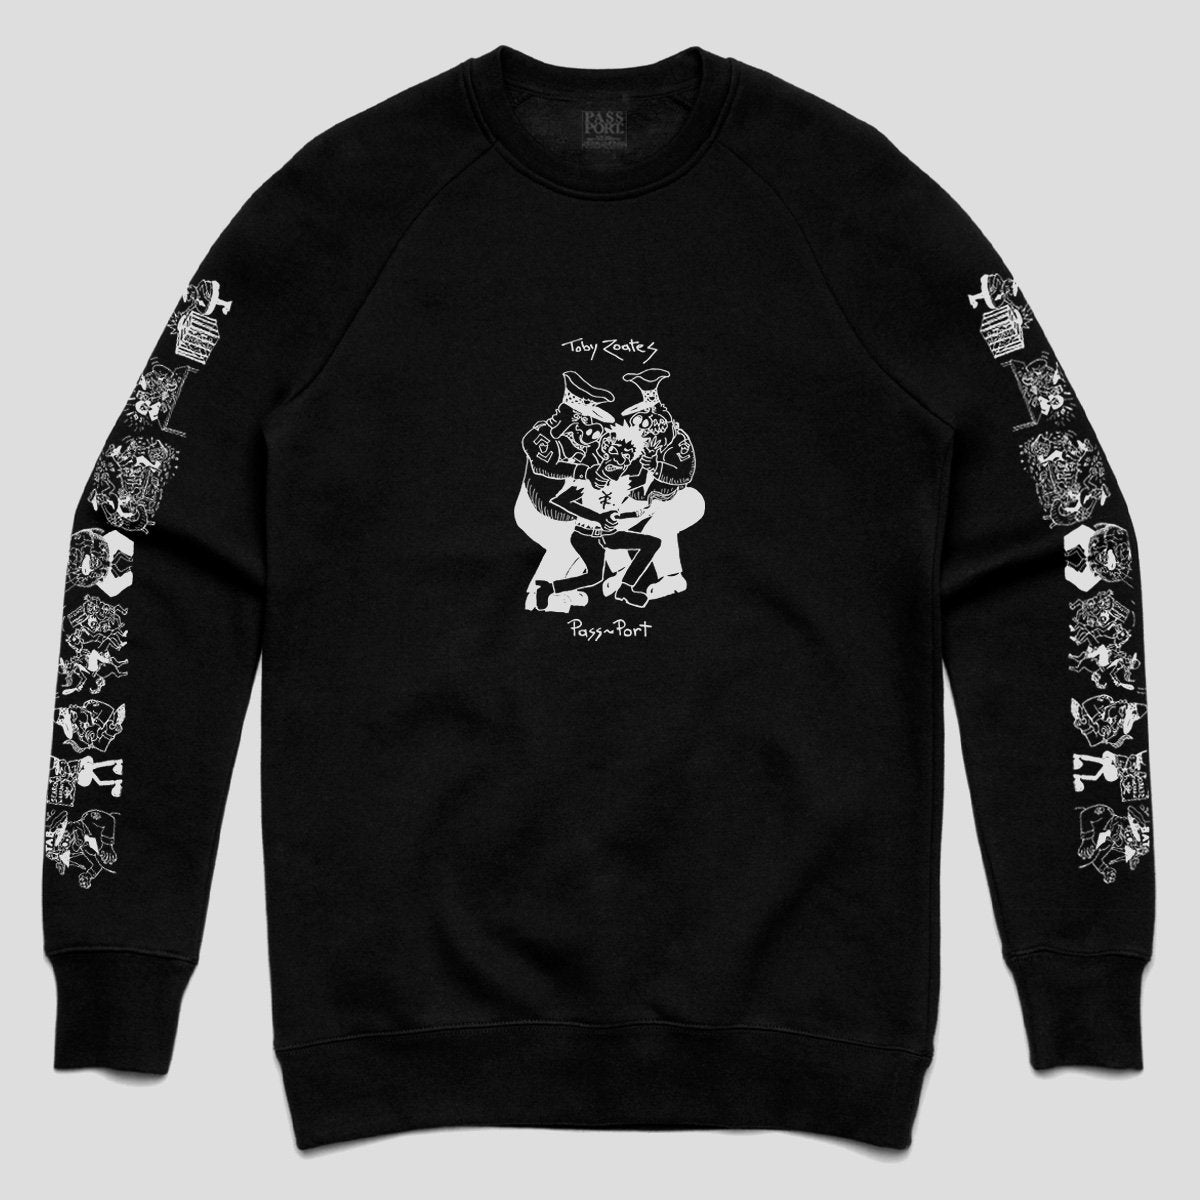 "PASS~PORT TOBY ZOATES ""COPPERS"" SWEATER BLACK"